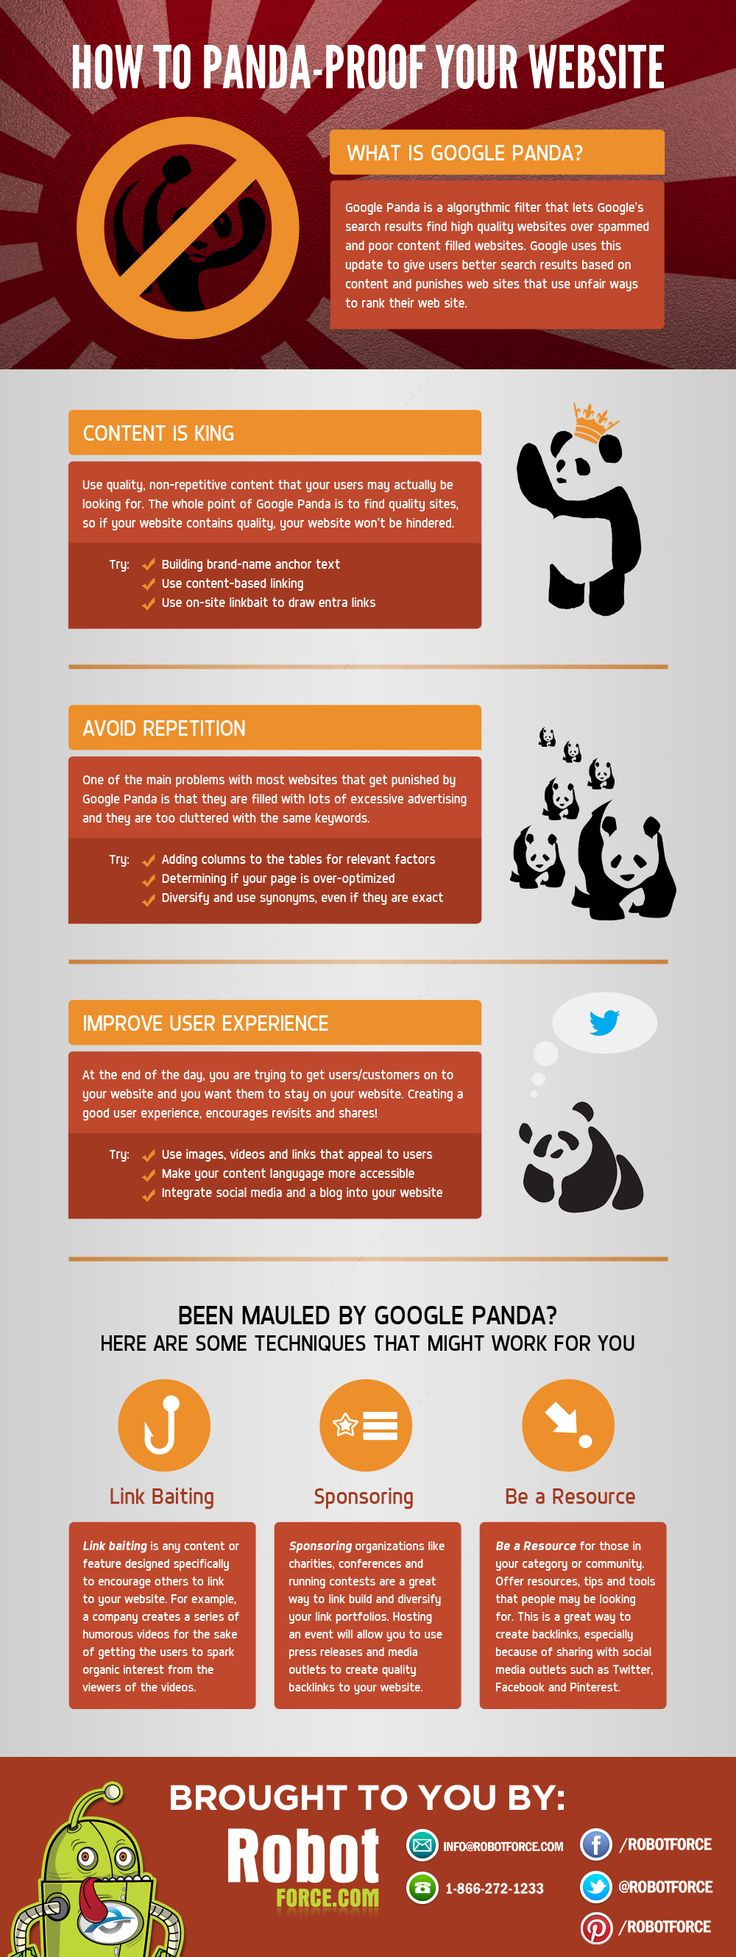 The Google Panda 3.8 Update and How to Panda-Proof Your Site #SEO #Entrepreneur #Website